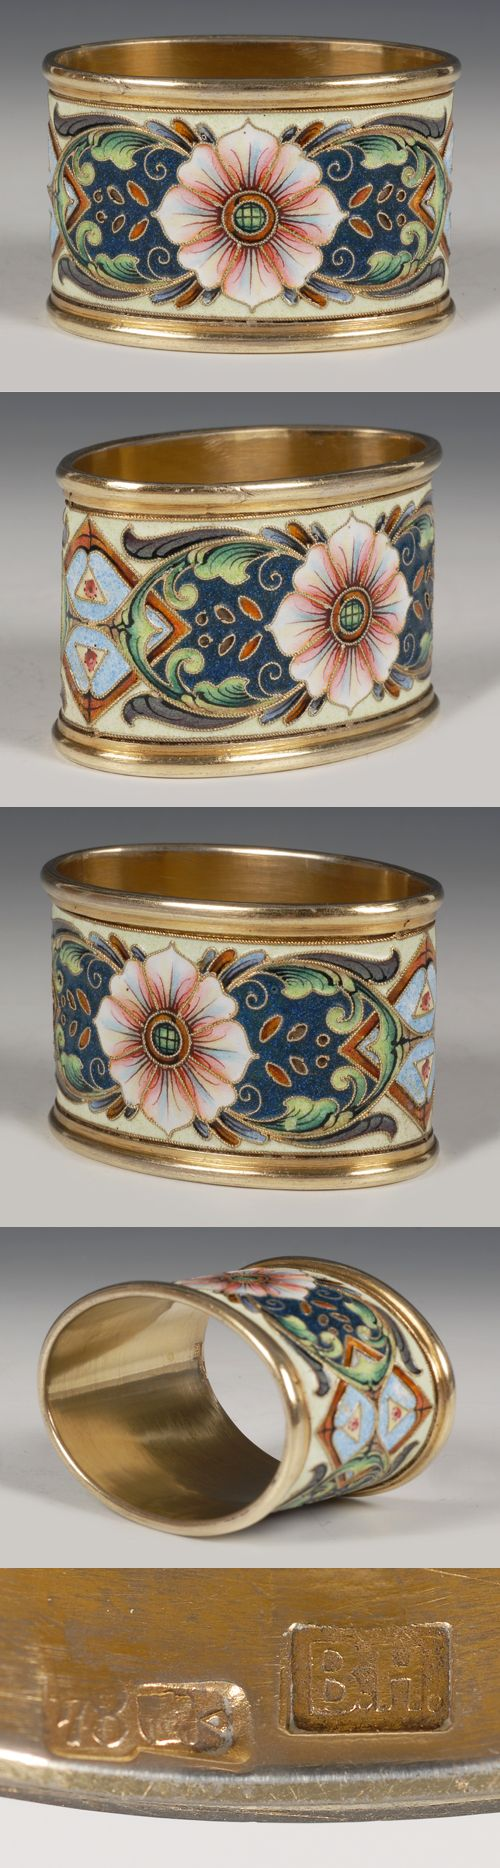 A Russian silver gilt and shaded cloisonne enamel napkin ring, Vasilly Naumov, Moscow, circa 1908-1917.